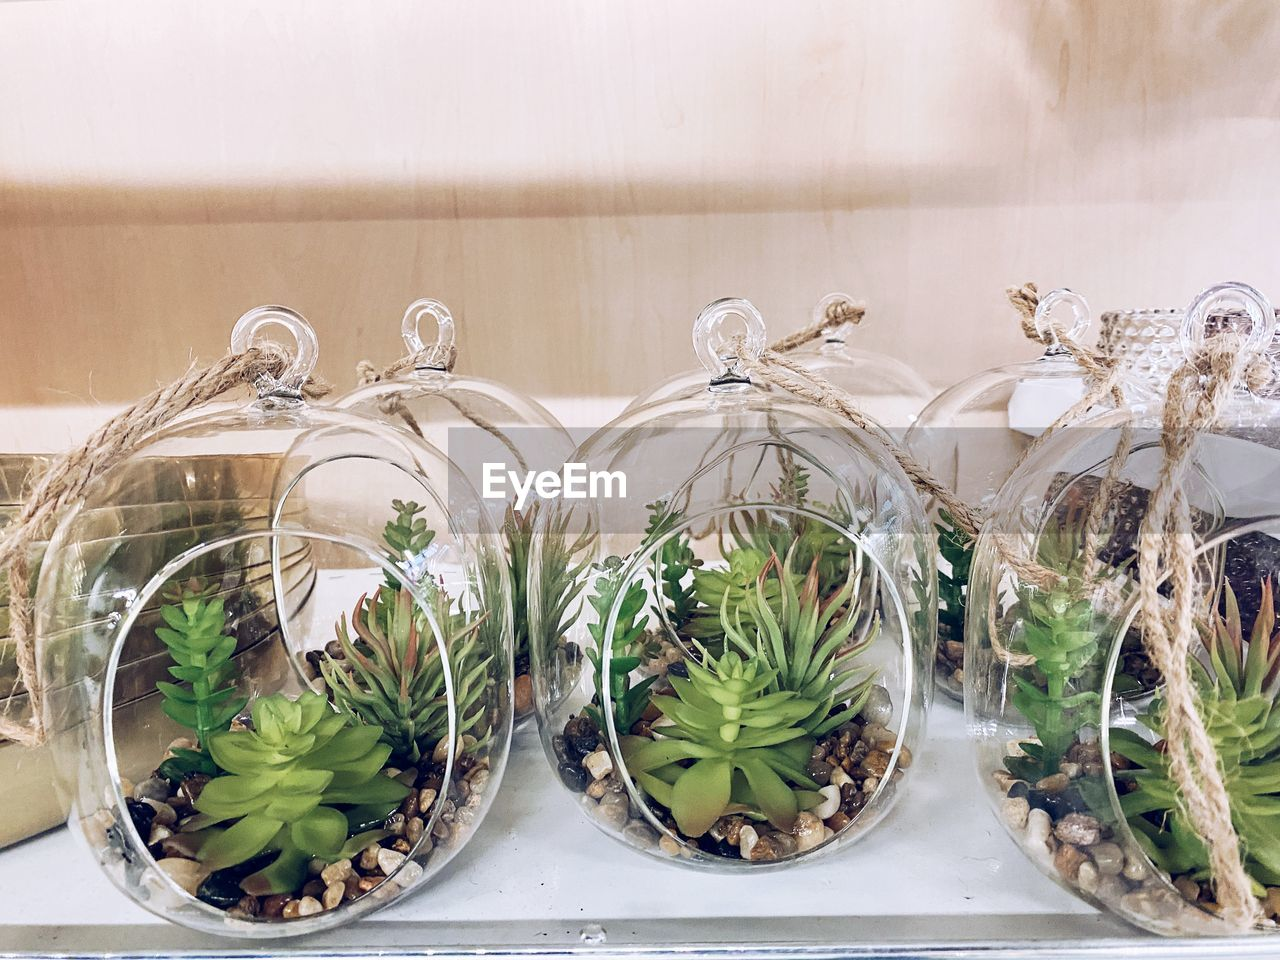 CLOSE-UP OF PLANTS IN GLASS CONTAINER